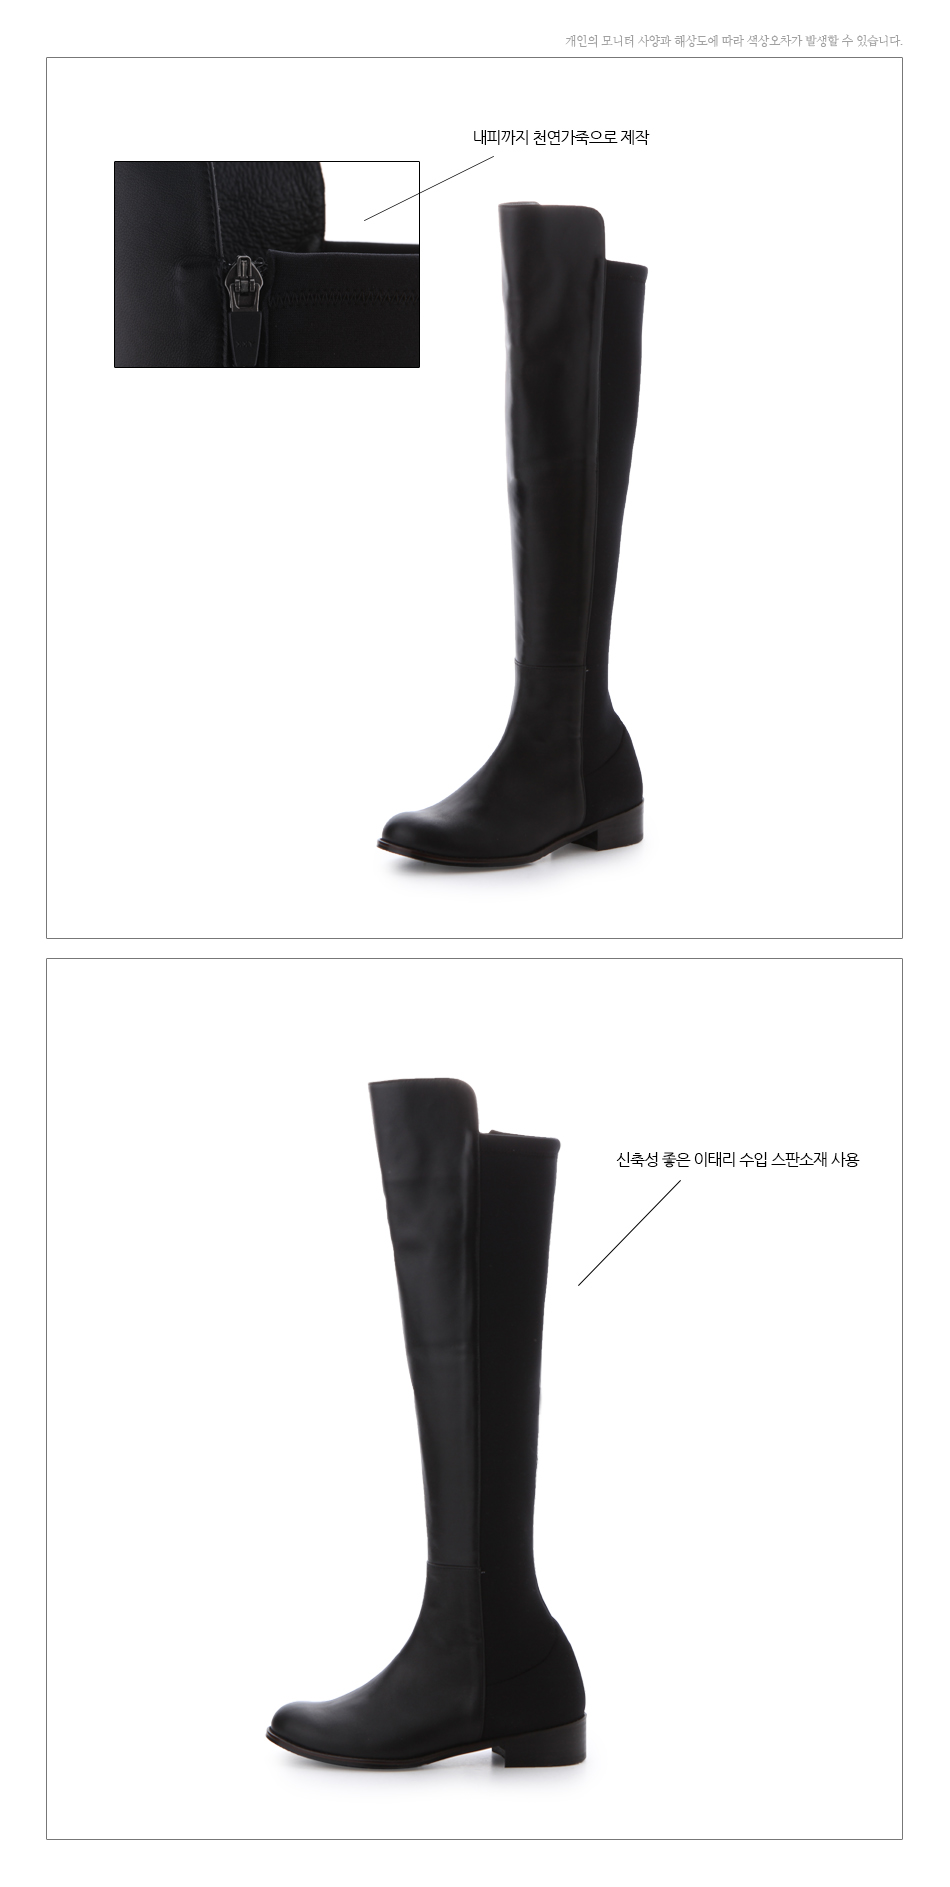 Boots Cổ Cao Thiết Kế 3cm - GB969